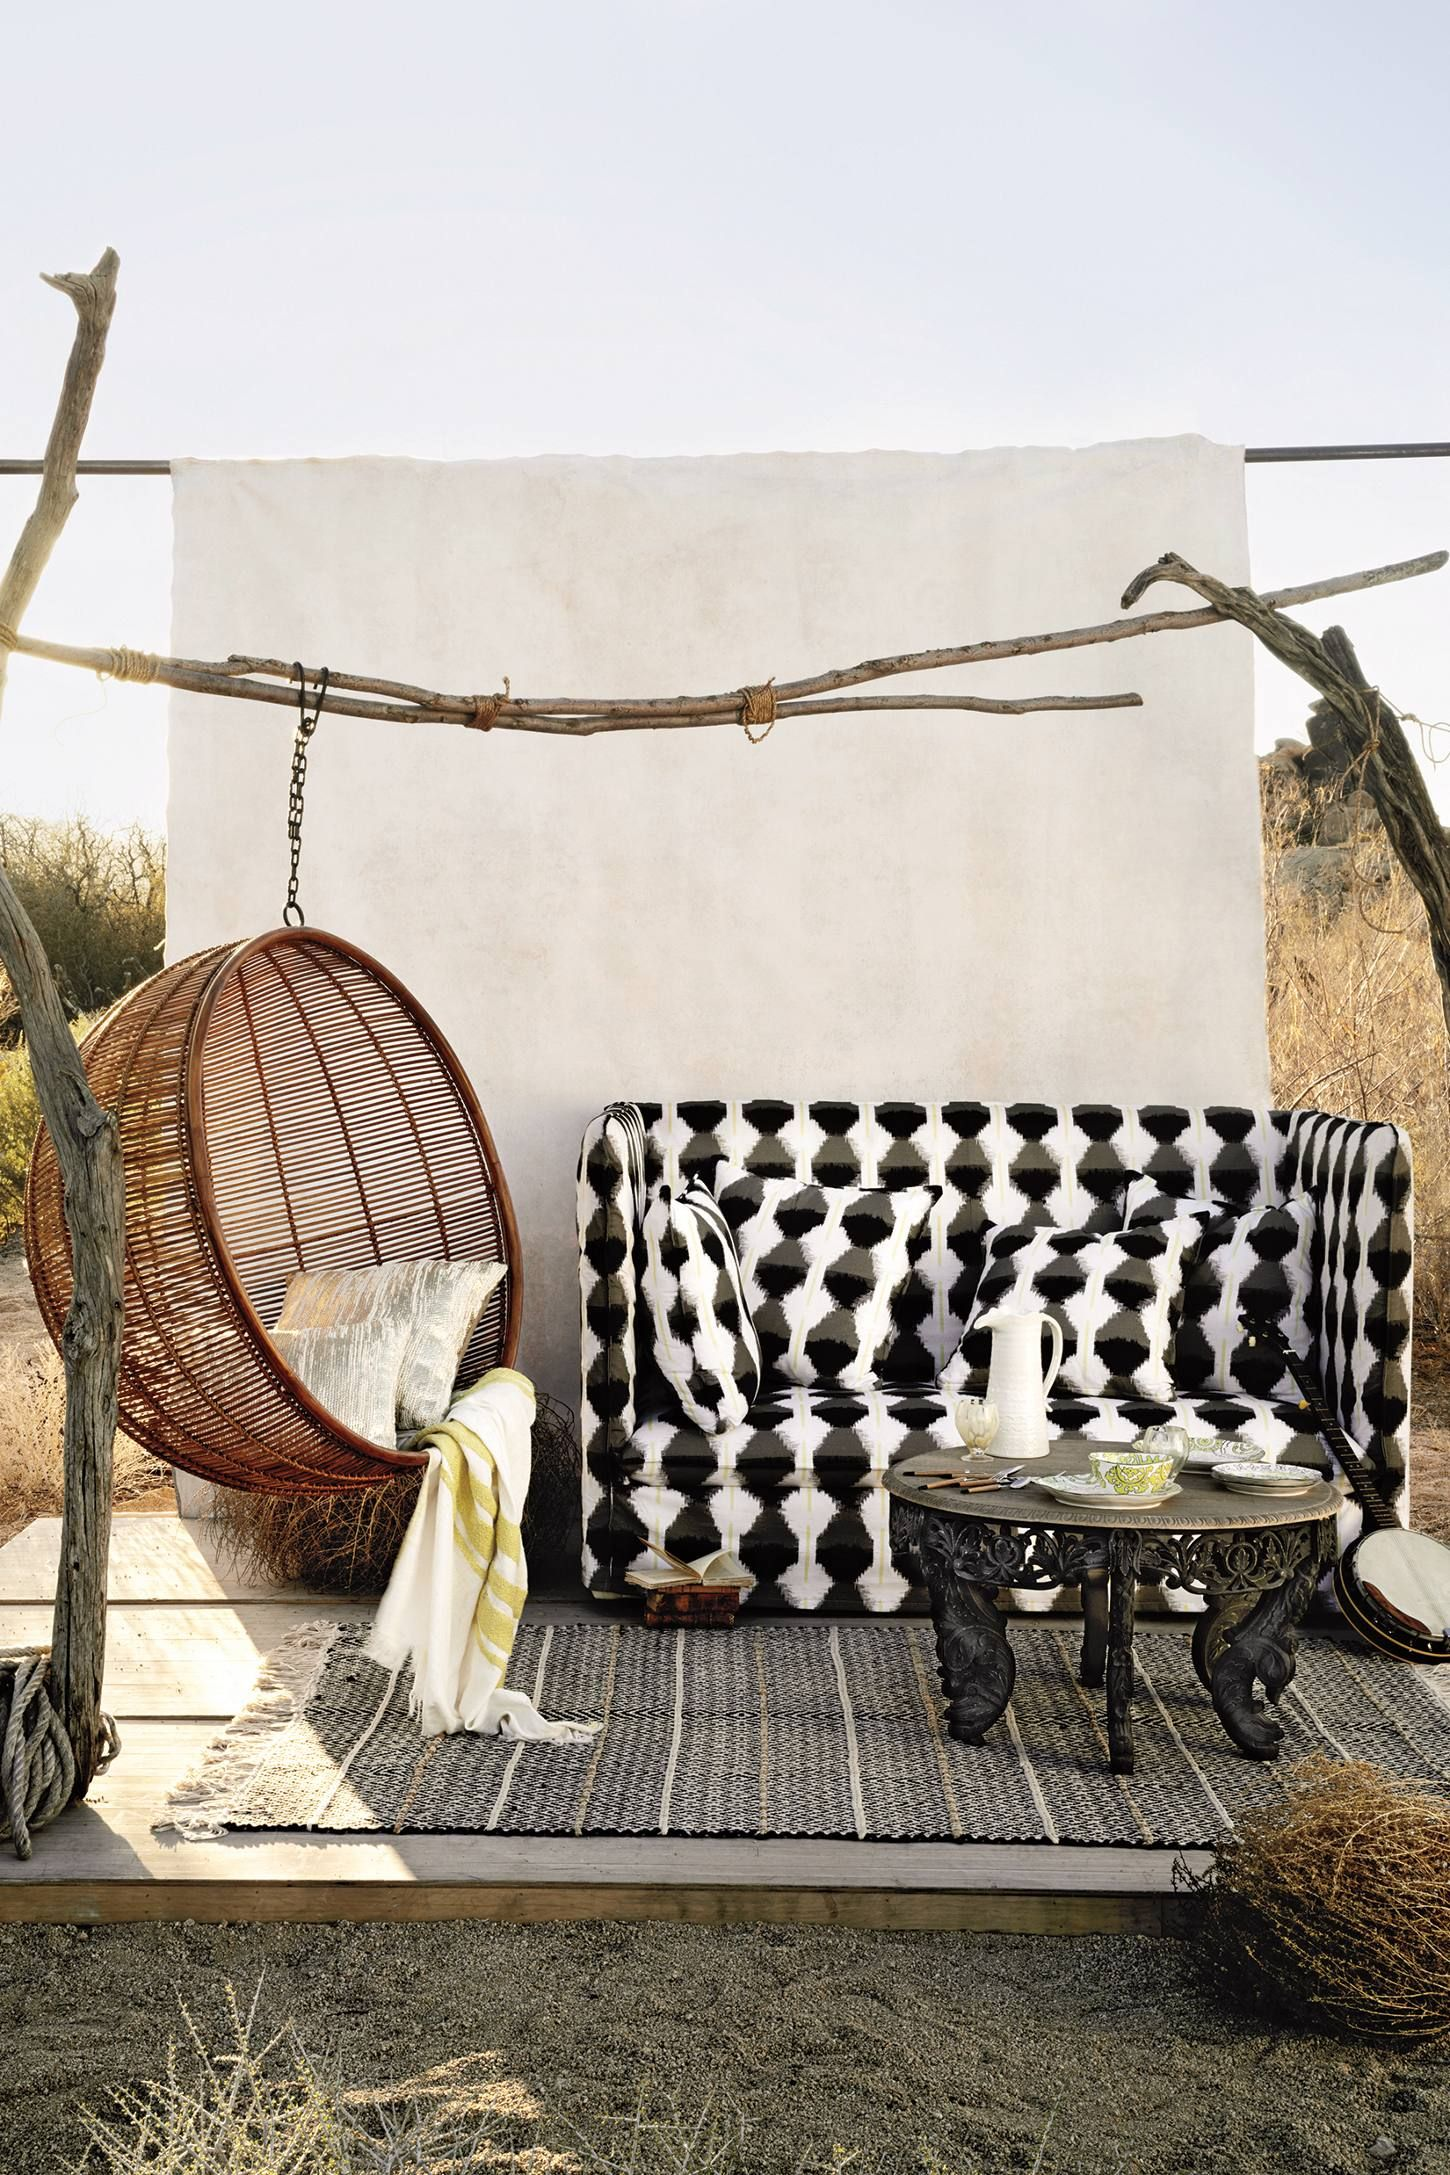 Rattan hanging chair hanging chair rattan and outdoor seating areas